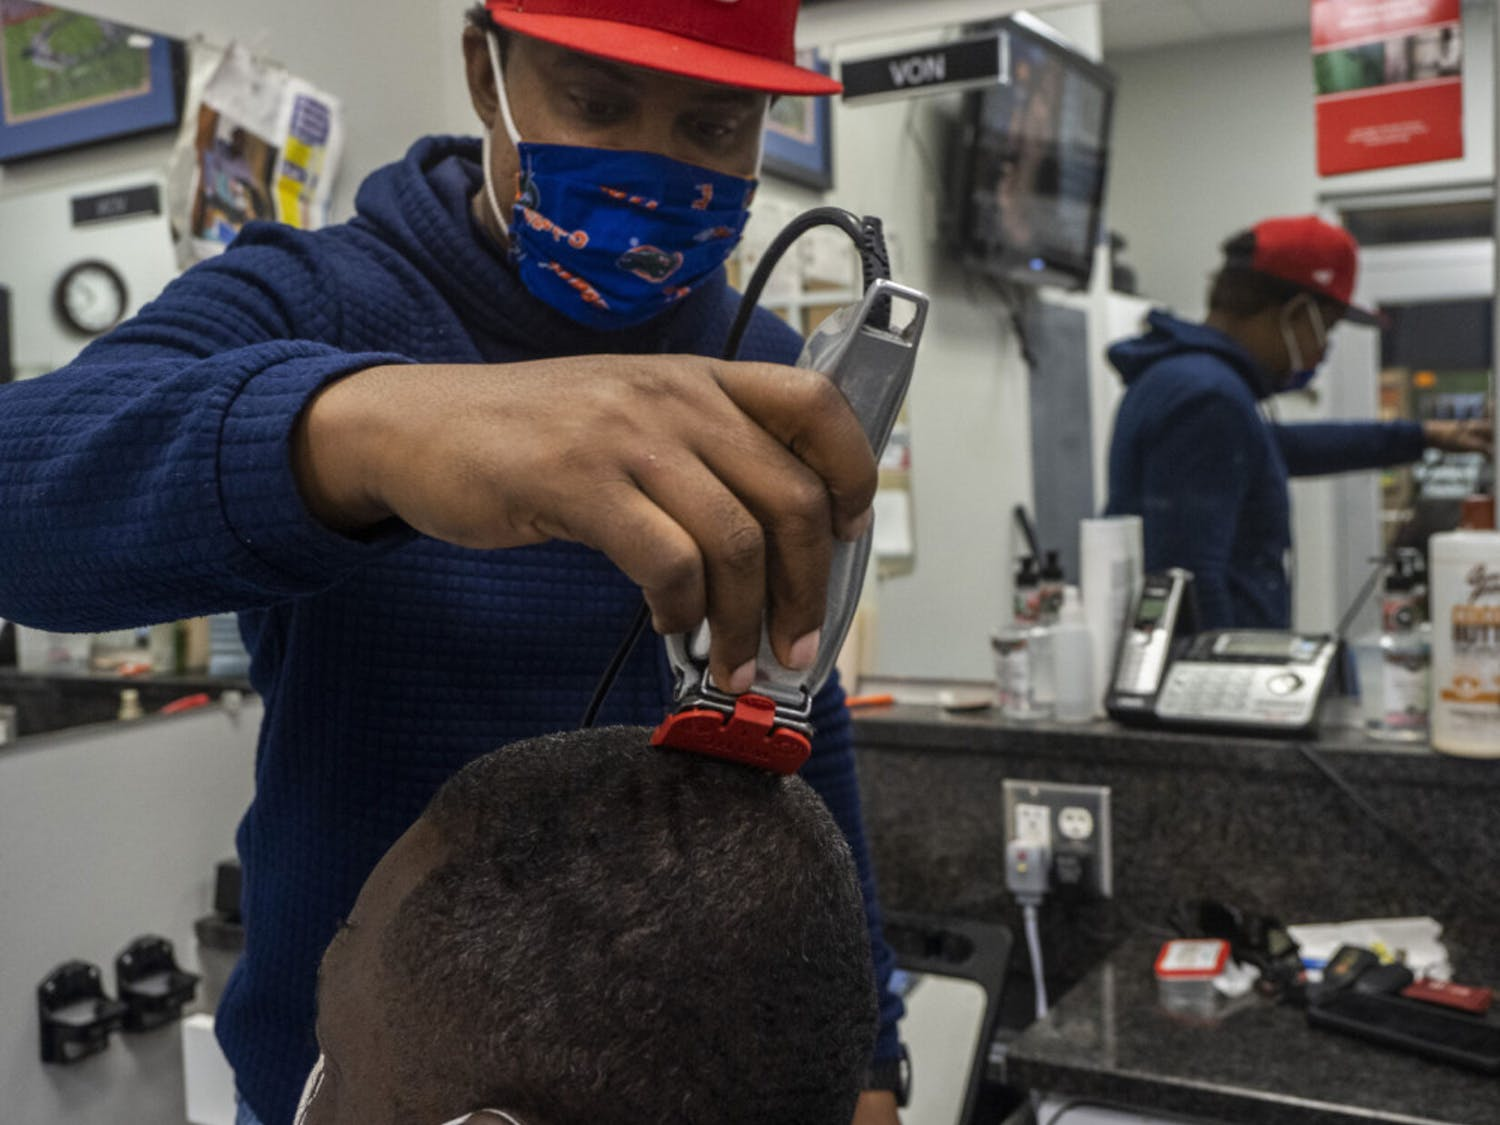 Von Brockington, a barber at The Reitz Union Barber Shop, is seen trimming John Smith's hair on Monday, Oct. 19, 2020.